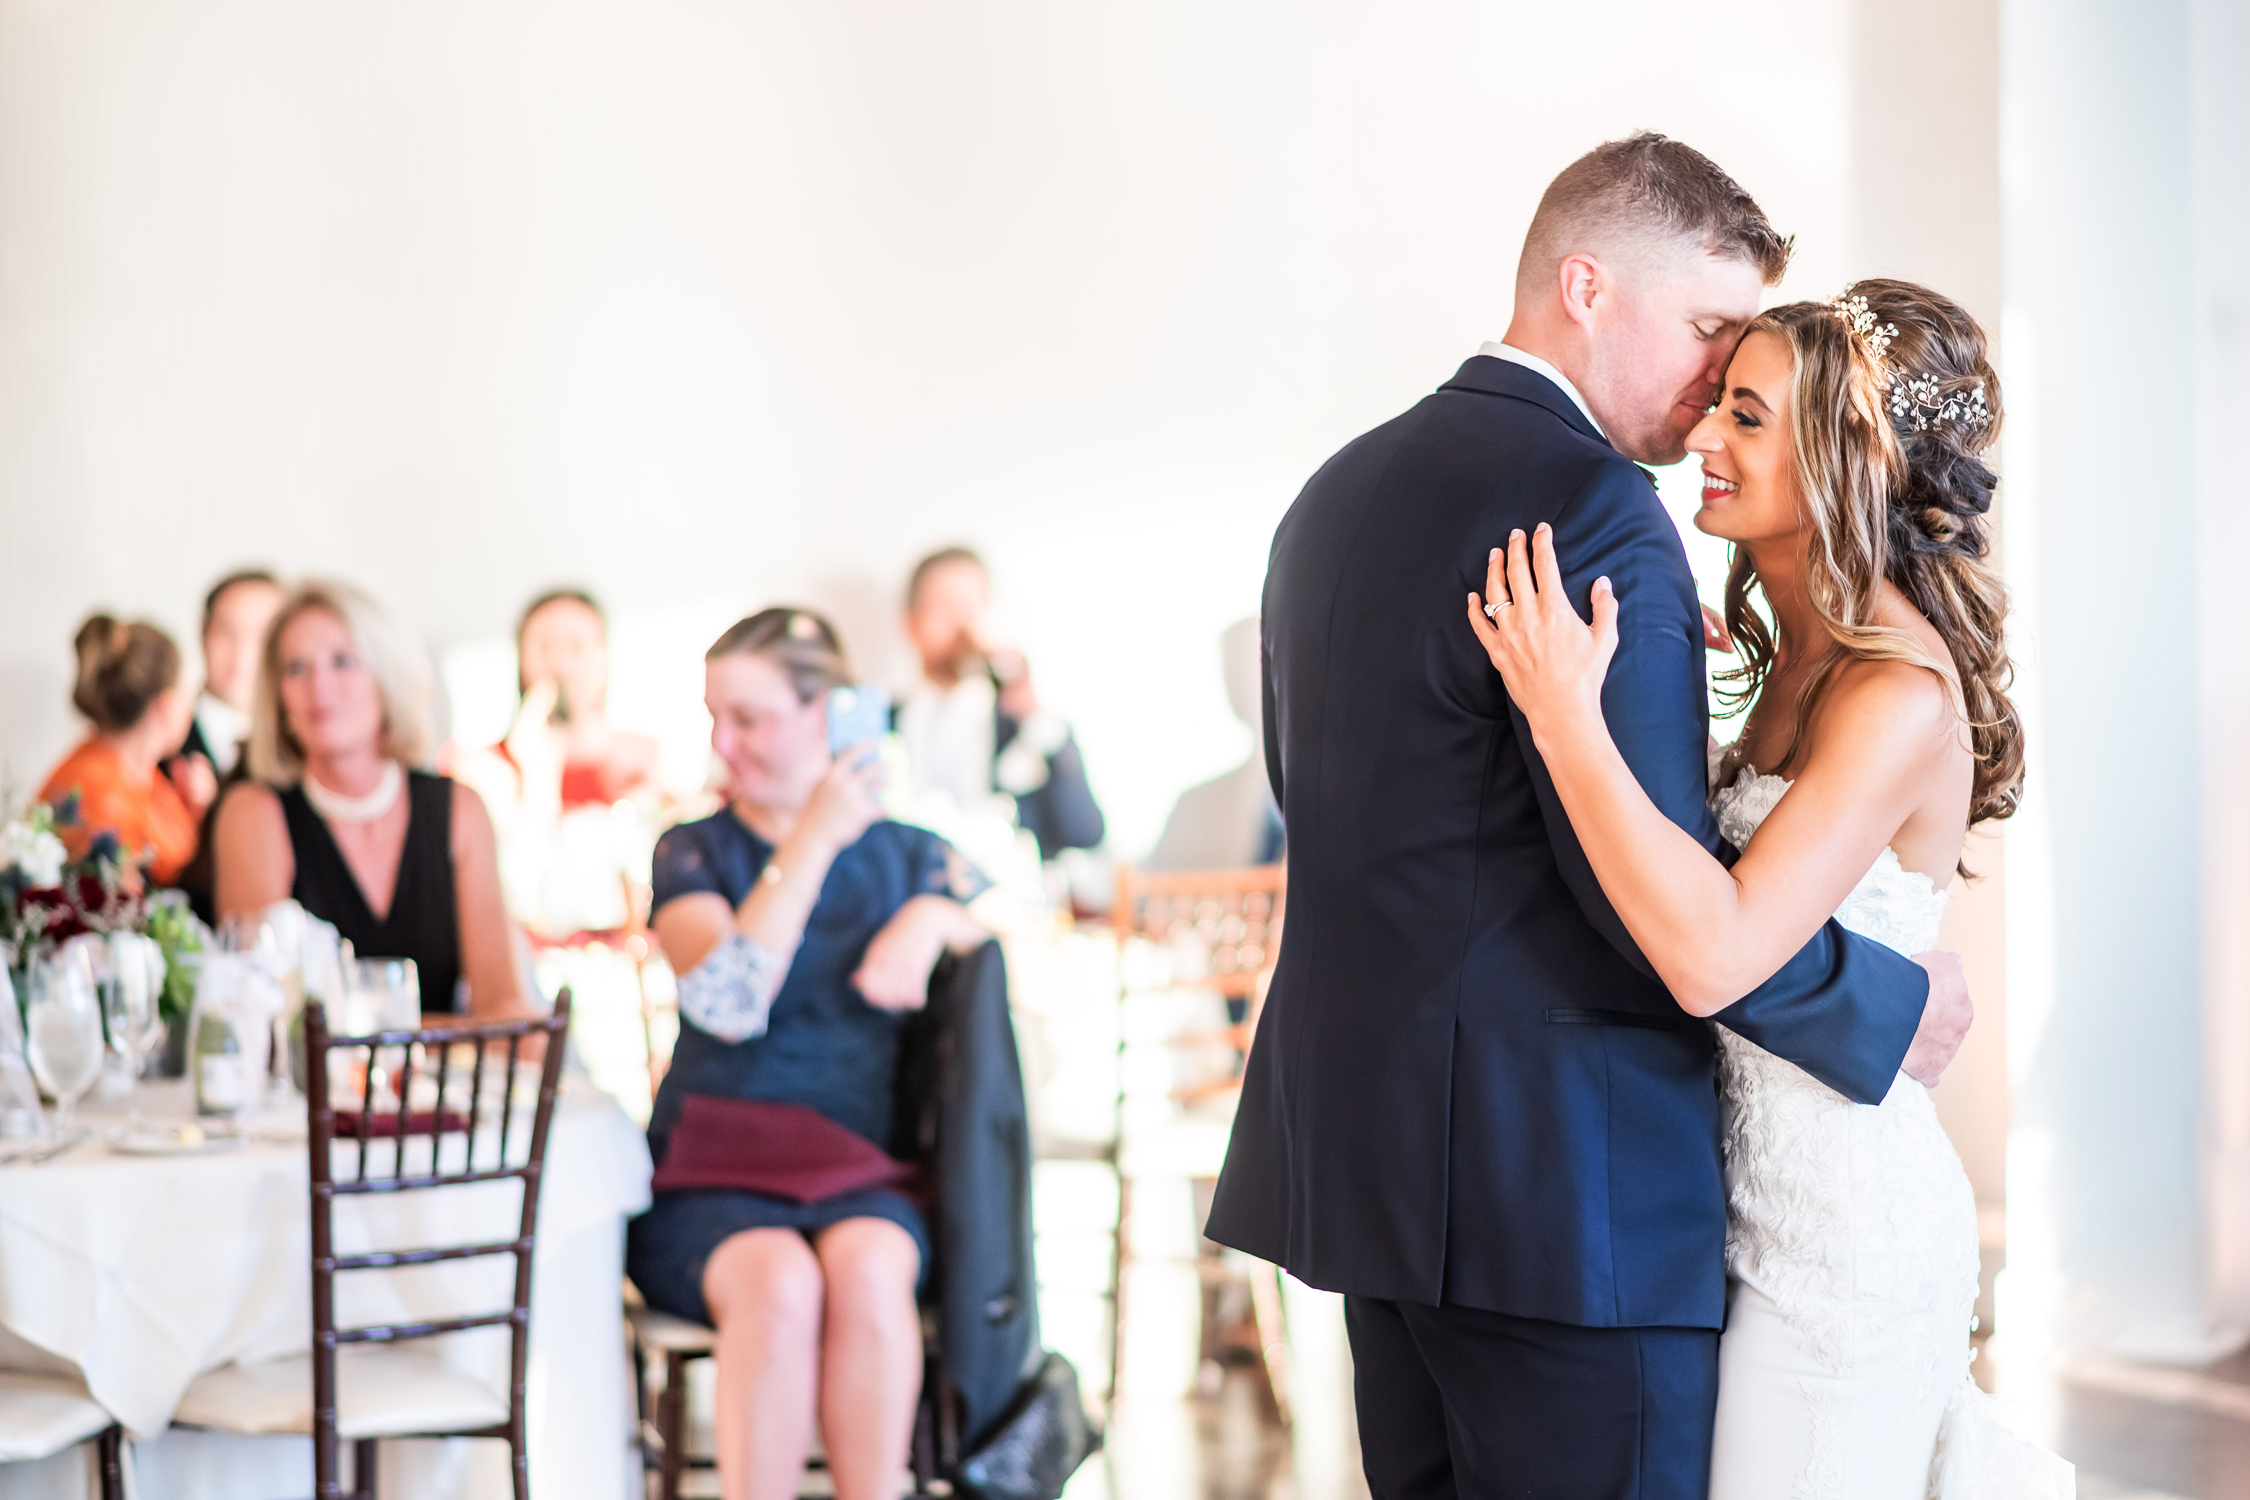 Emma_Cleary_Photo_and_Video_wedding_photos_0017